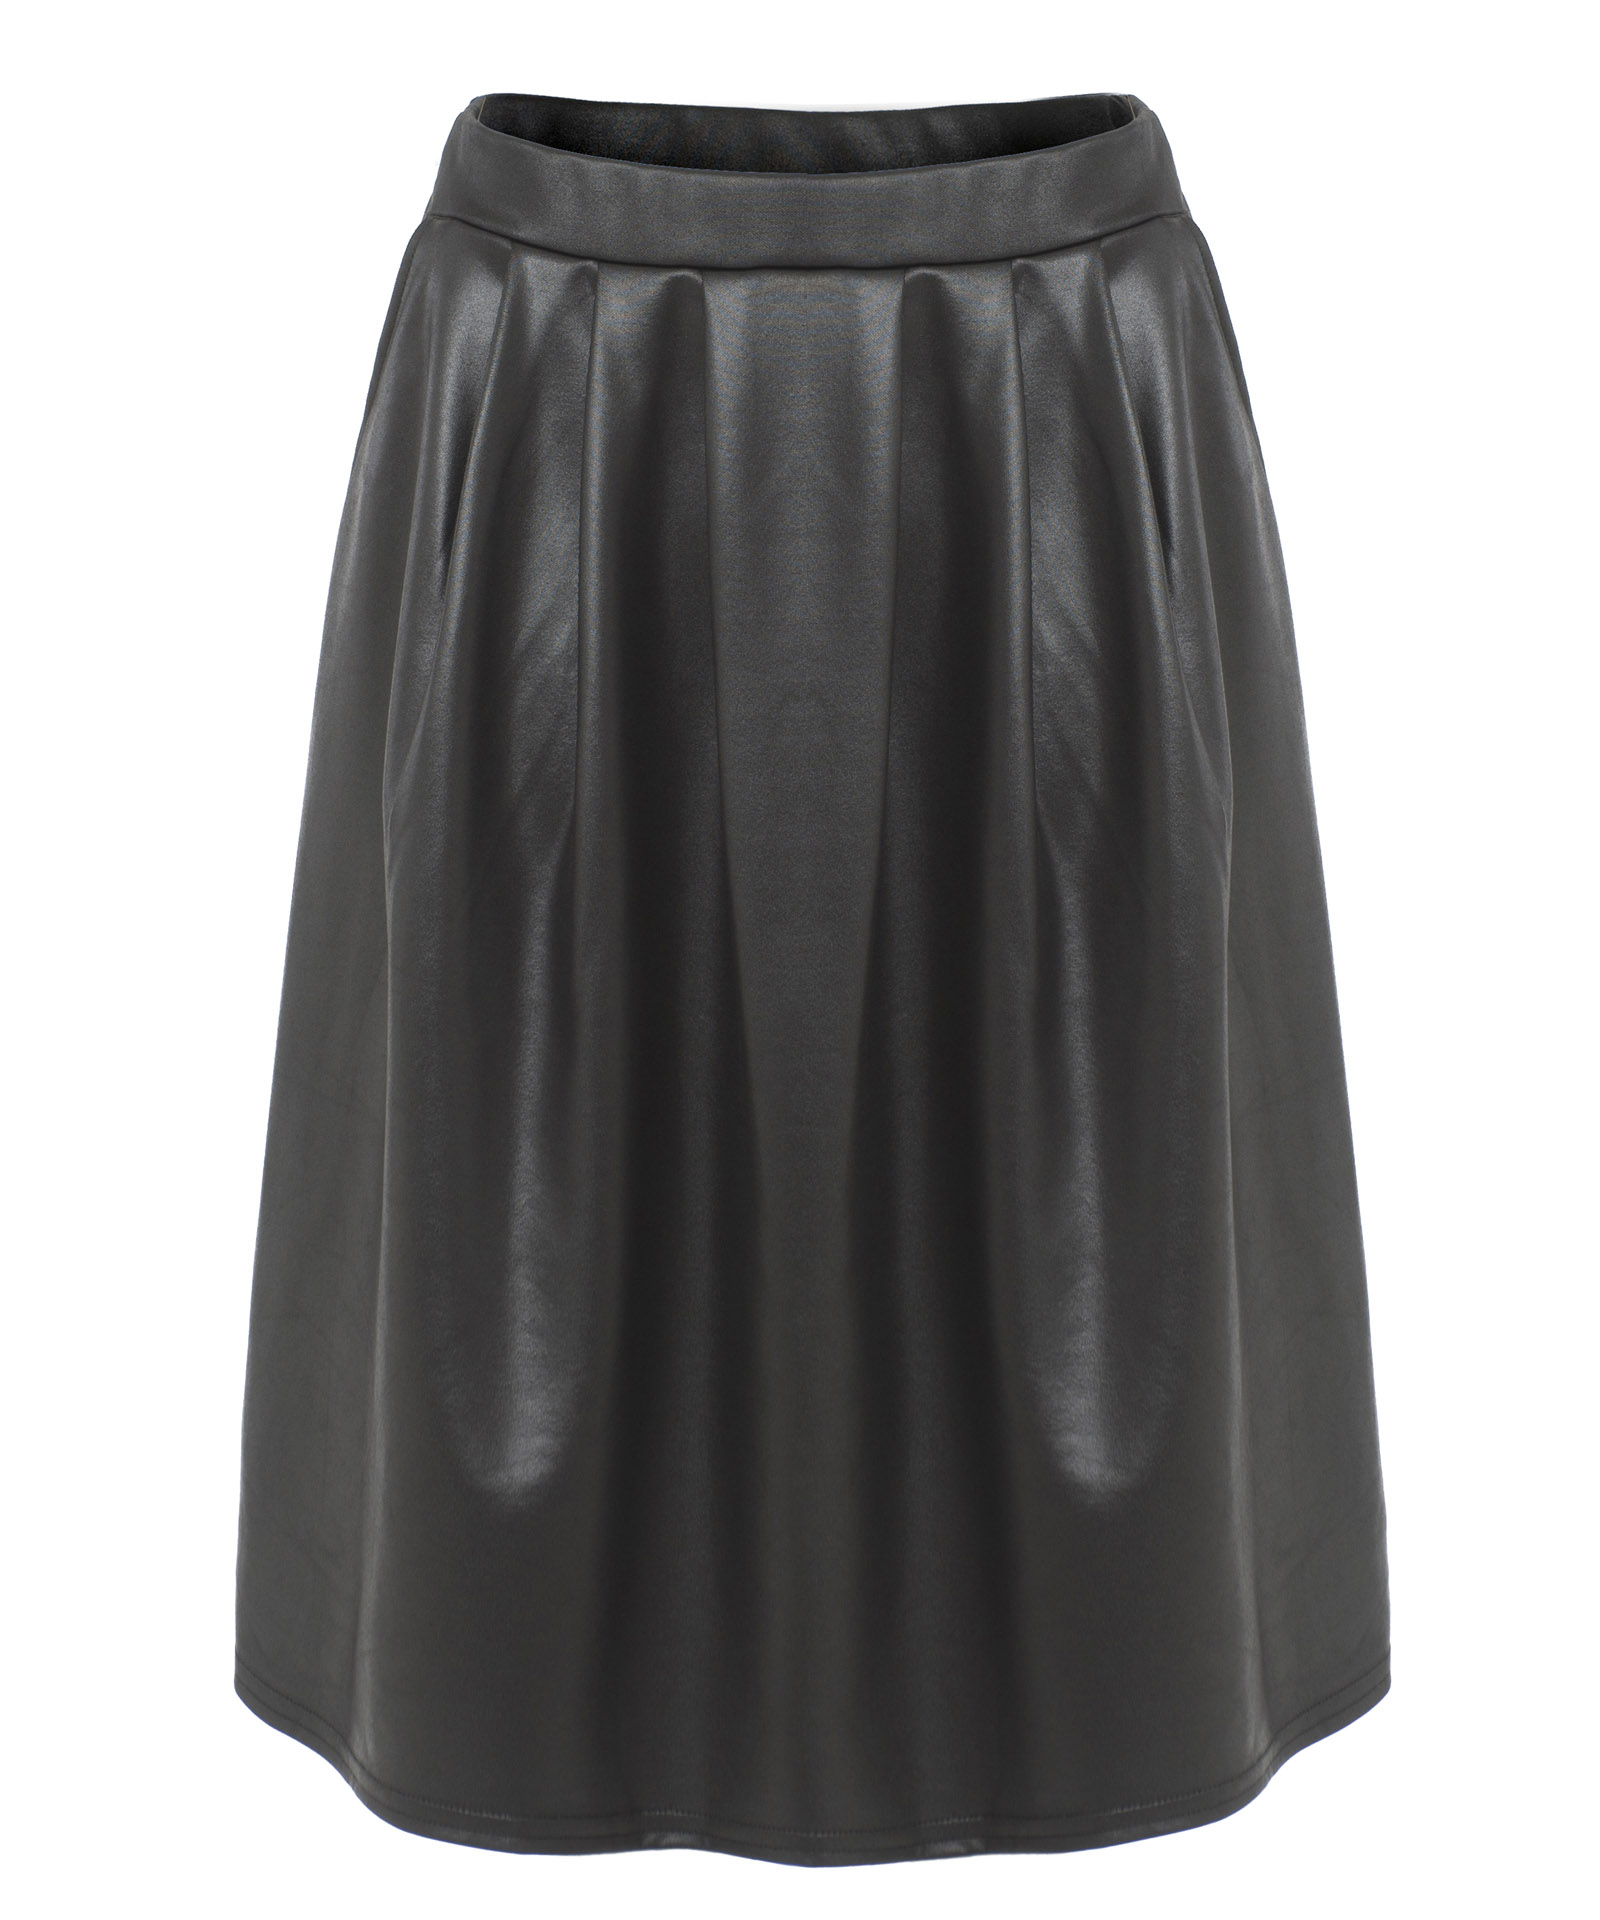 View Item PU Wet Look Pleated Skirt